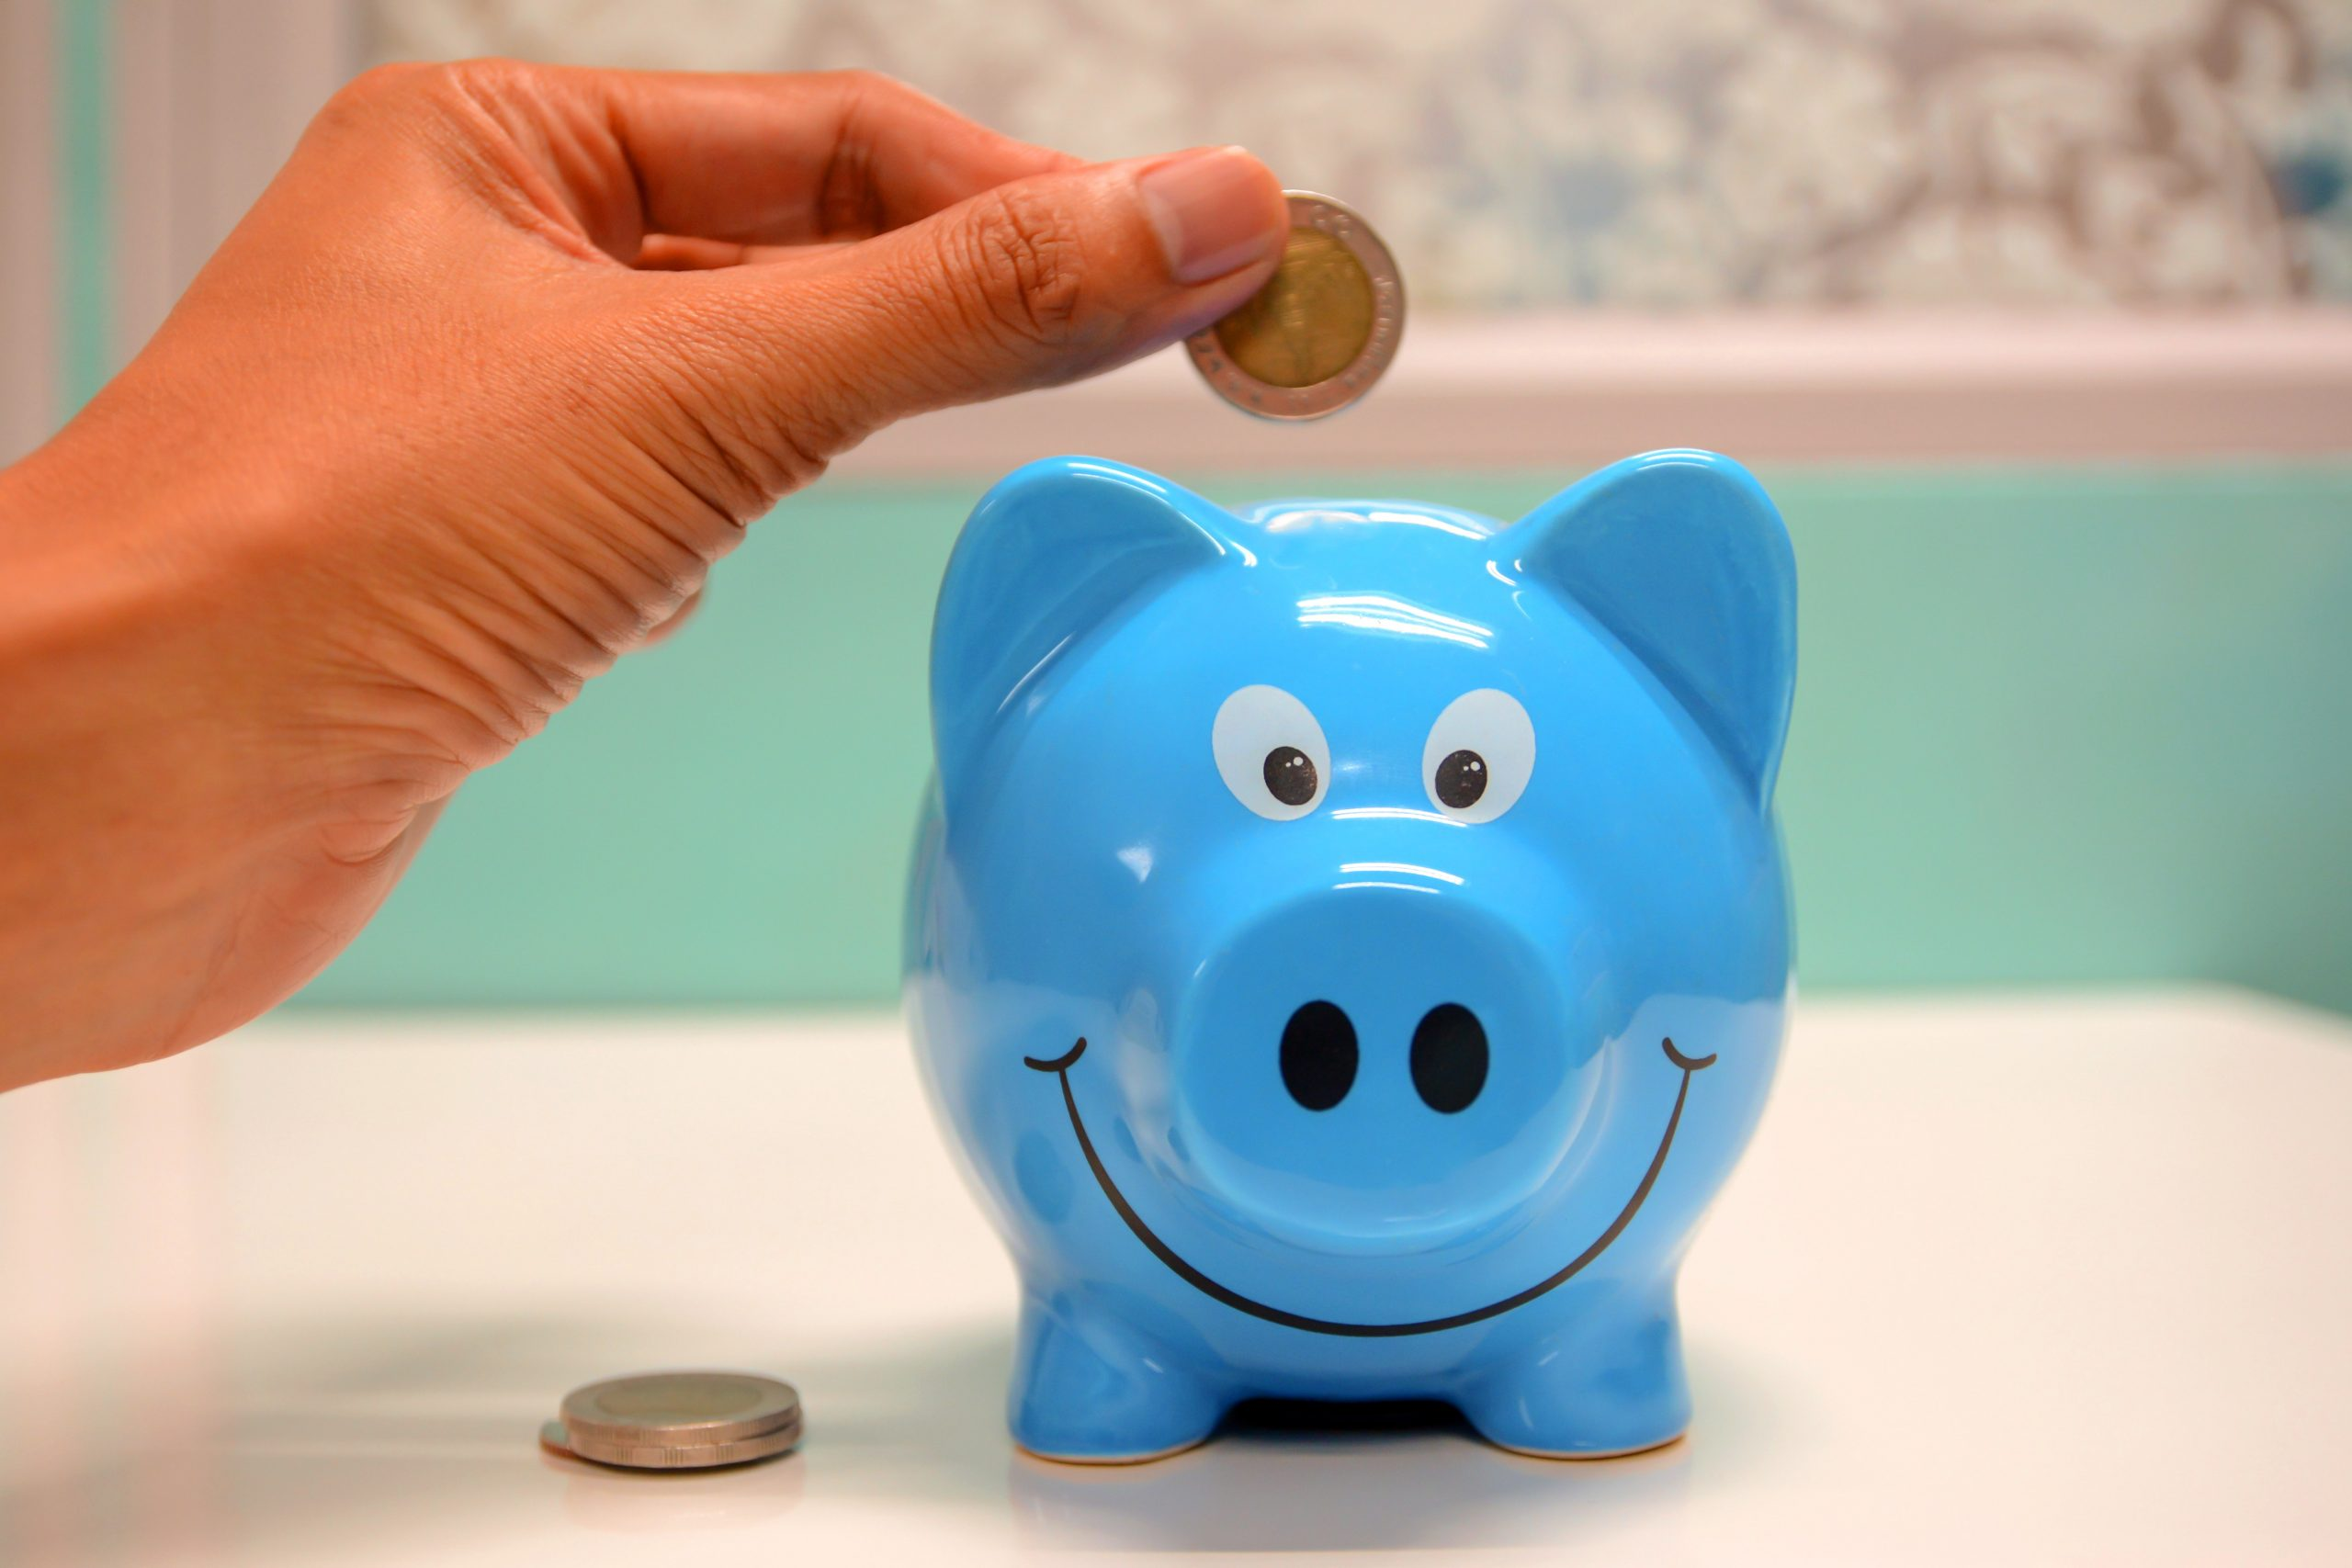 Hand dropping coin into a blue piggy bank